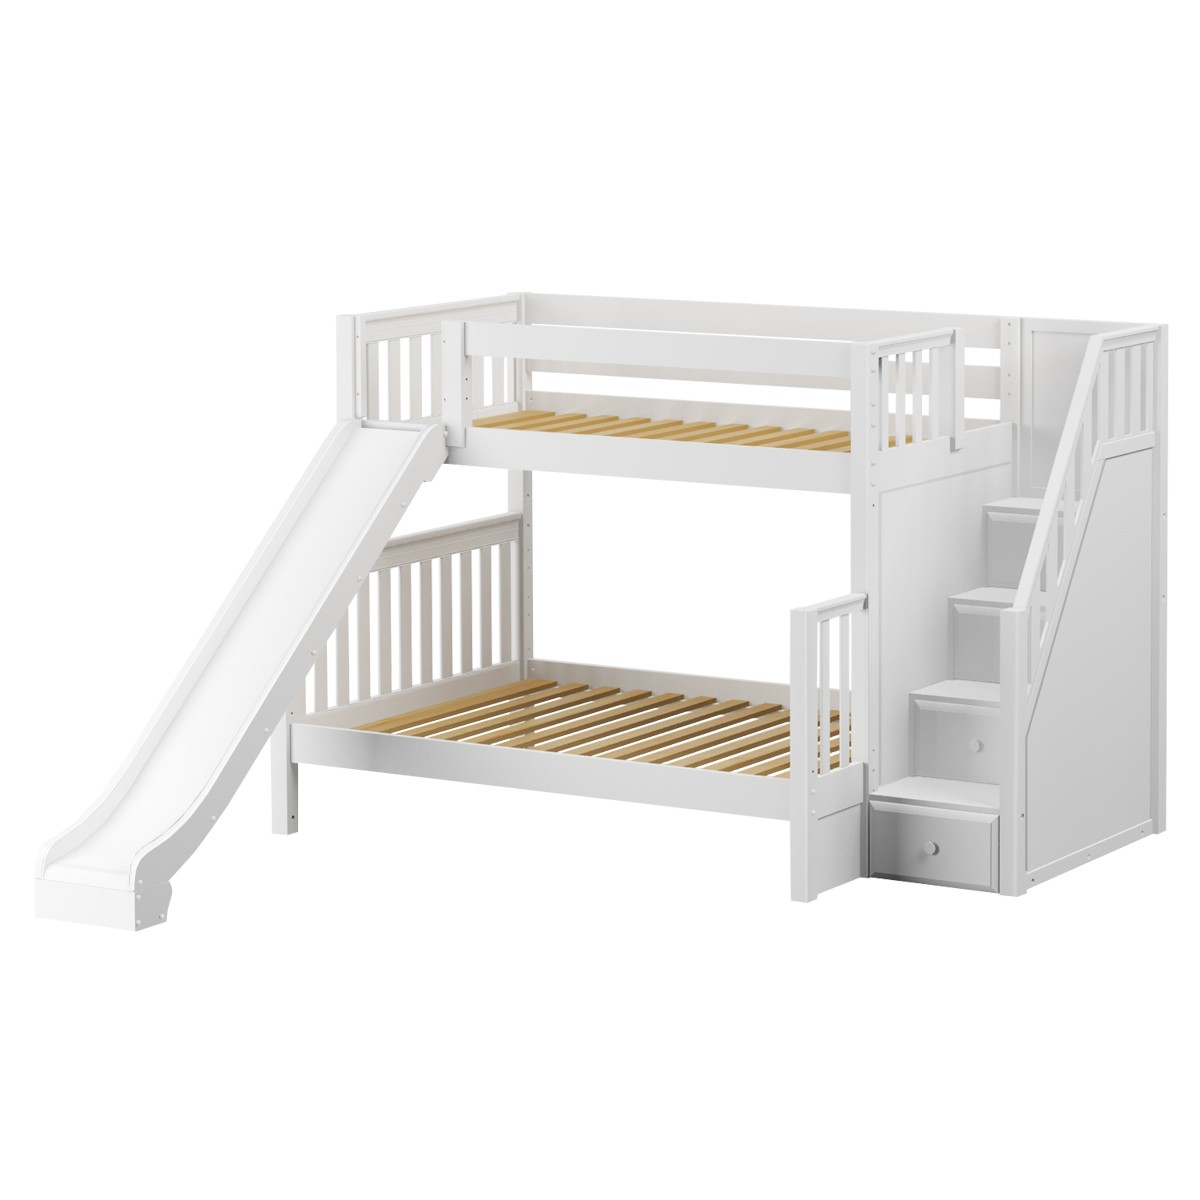 Foxtrot Med Tof Bunk Bed By Maxtrix Kids White Slats Stairs Slide